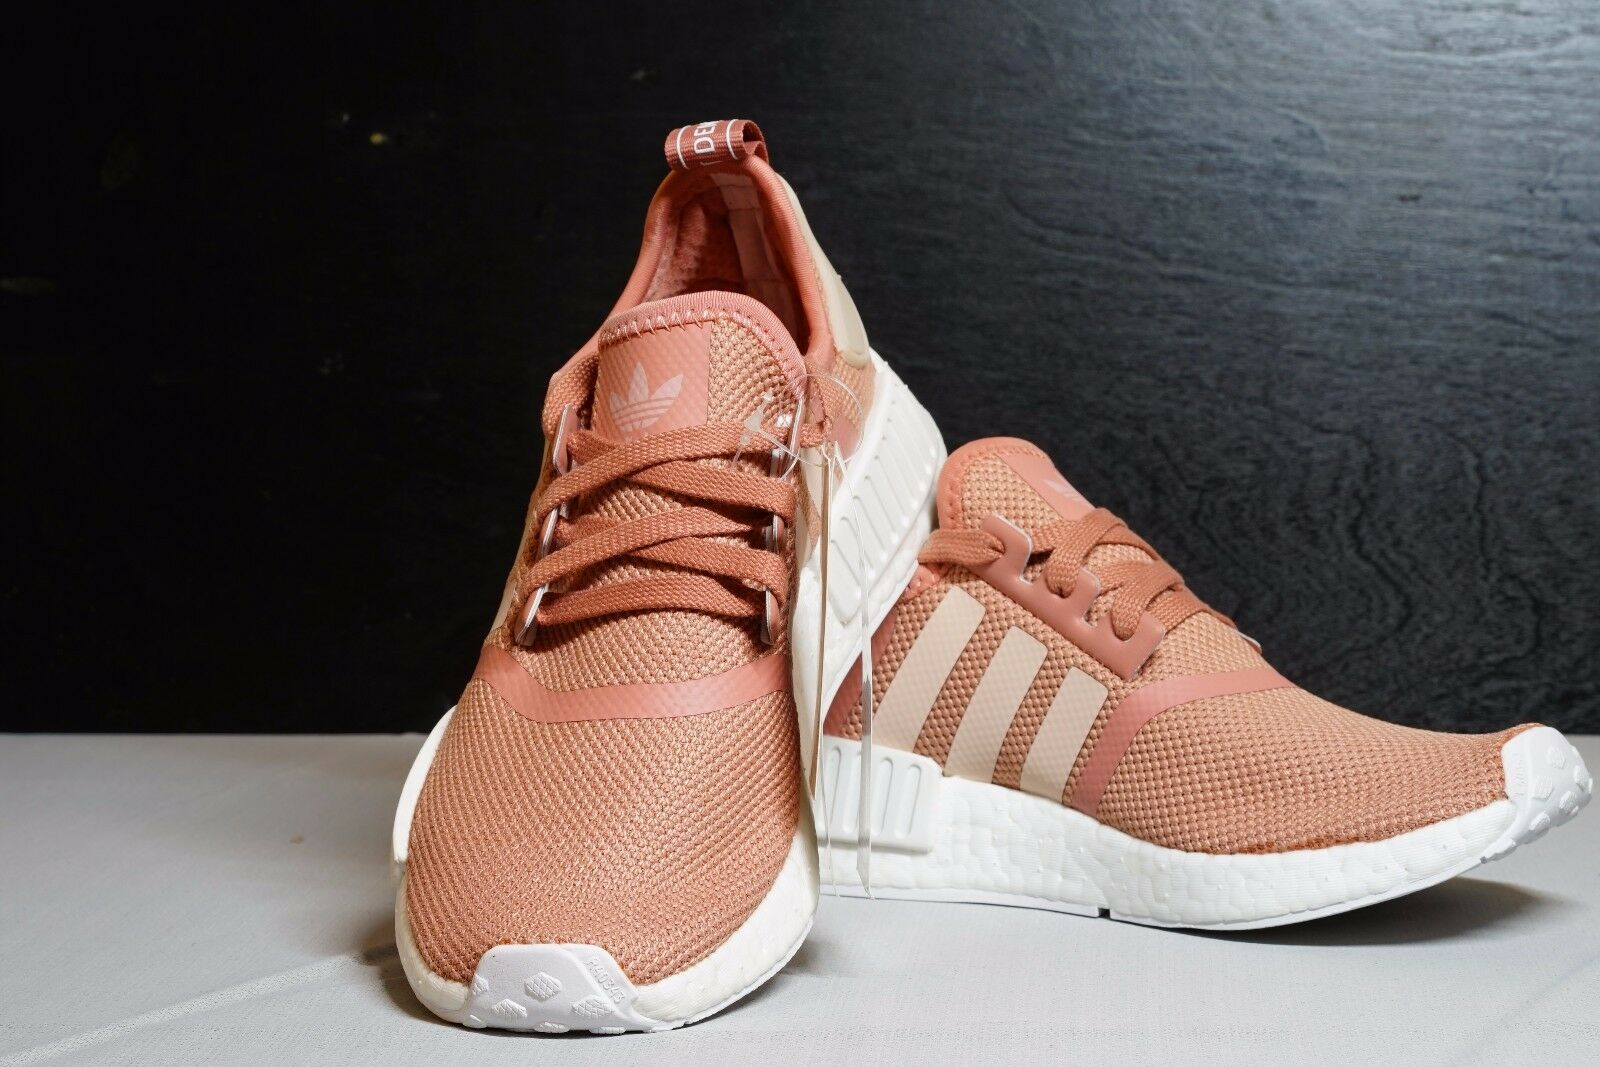 1f935c1078509 ... ADIDAS NMD NMD NMD R1 Raw Pink Rose Salmon Peach women shoes   USA  SELLER